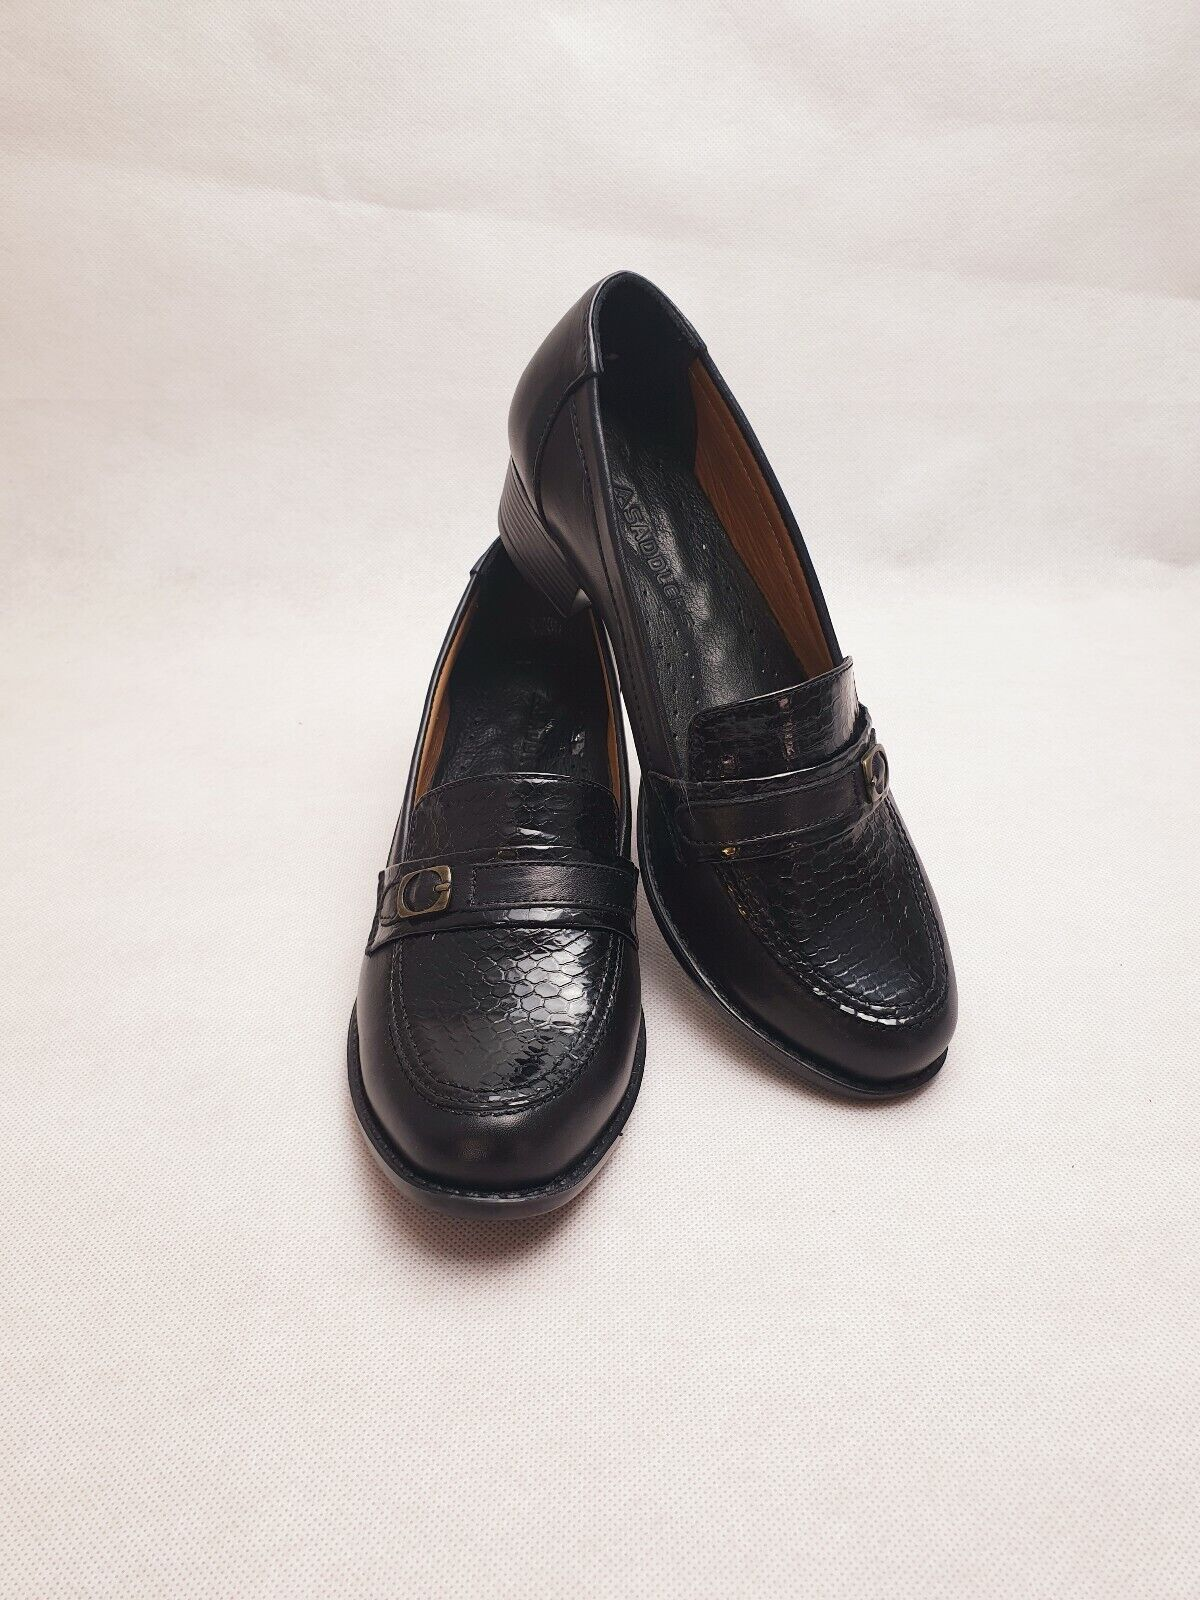 SADDLERS 111 Black Leather Low Heel Office Work Casual Women Loafers Pump Size 7